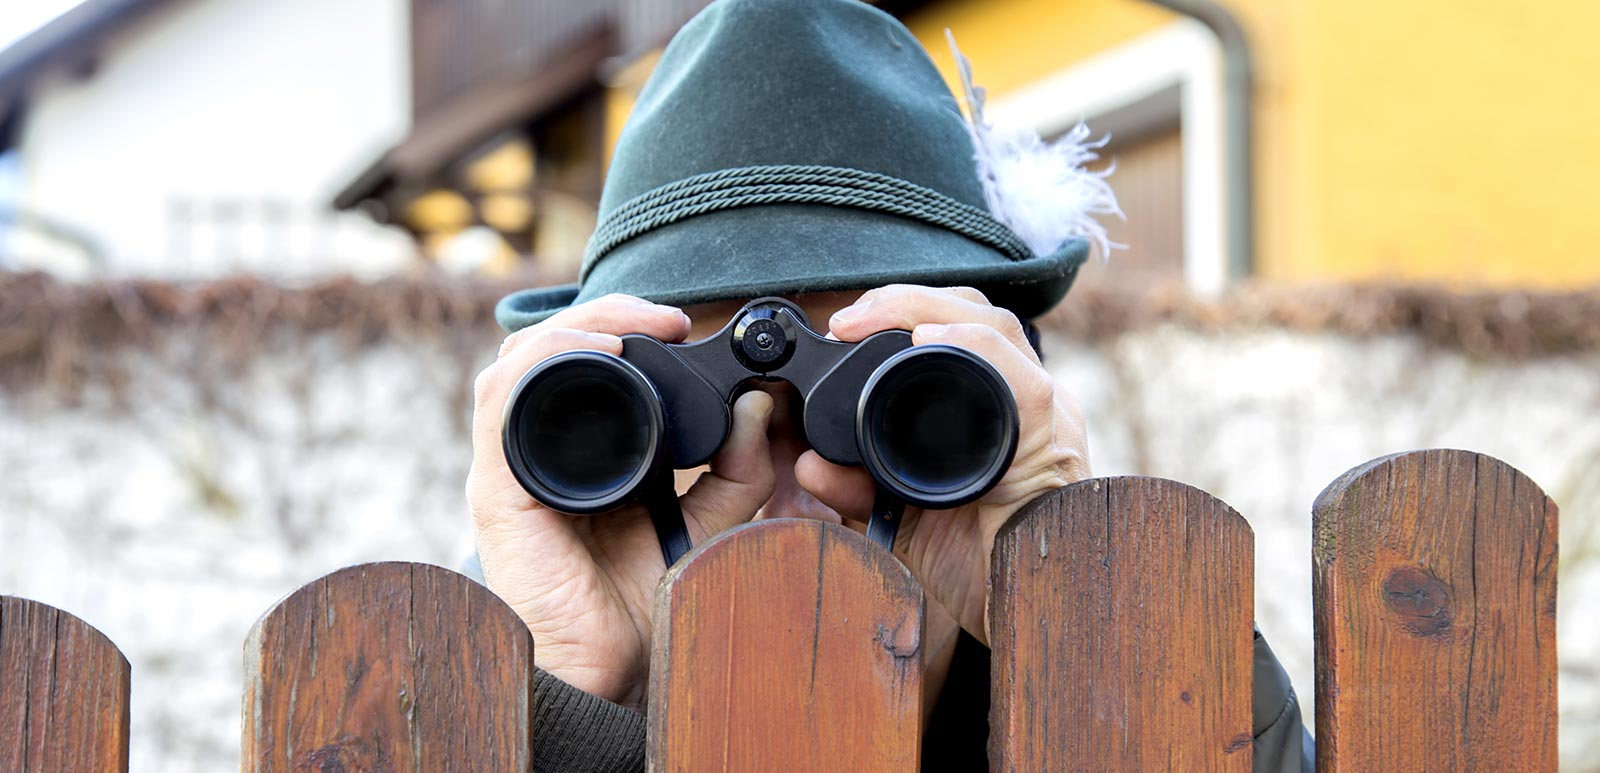 10 Tips for Keeping Our Neighborhoods Safe - Man with binoculars peering over fence